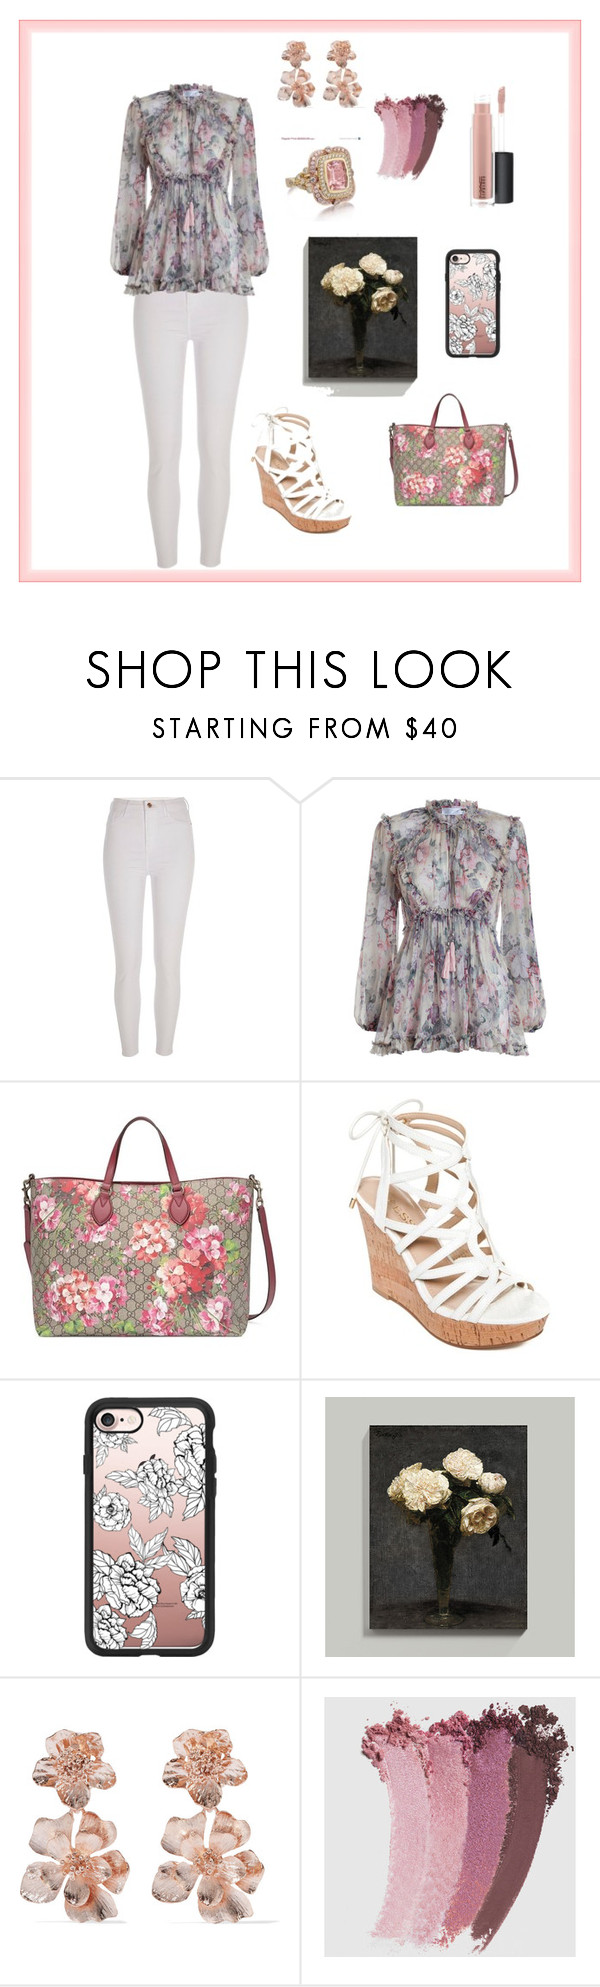 """""""Floral tops flower🌸"""" by anyi-love ❤ liked on Polyvore featuring River Island, Zimmermann, Gucci, GUESS, Casetify, Ballard Designs, Oscar de la Renta and MAC Cosmetics"""